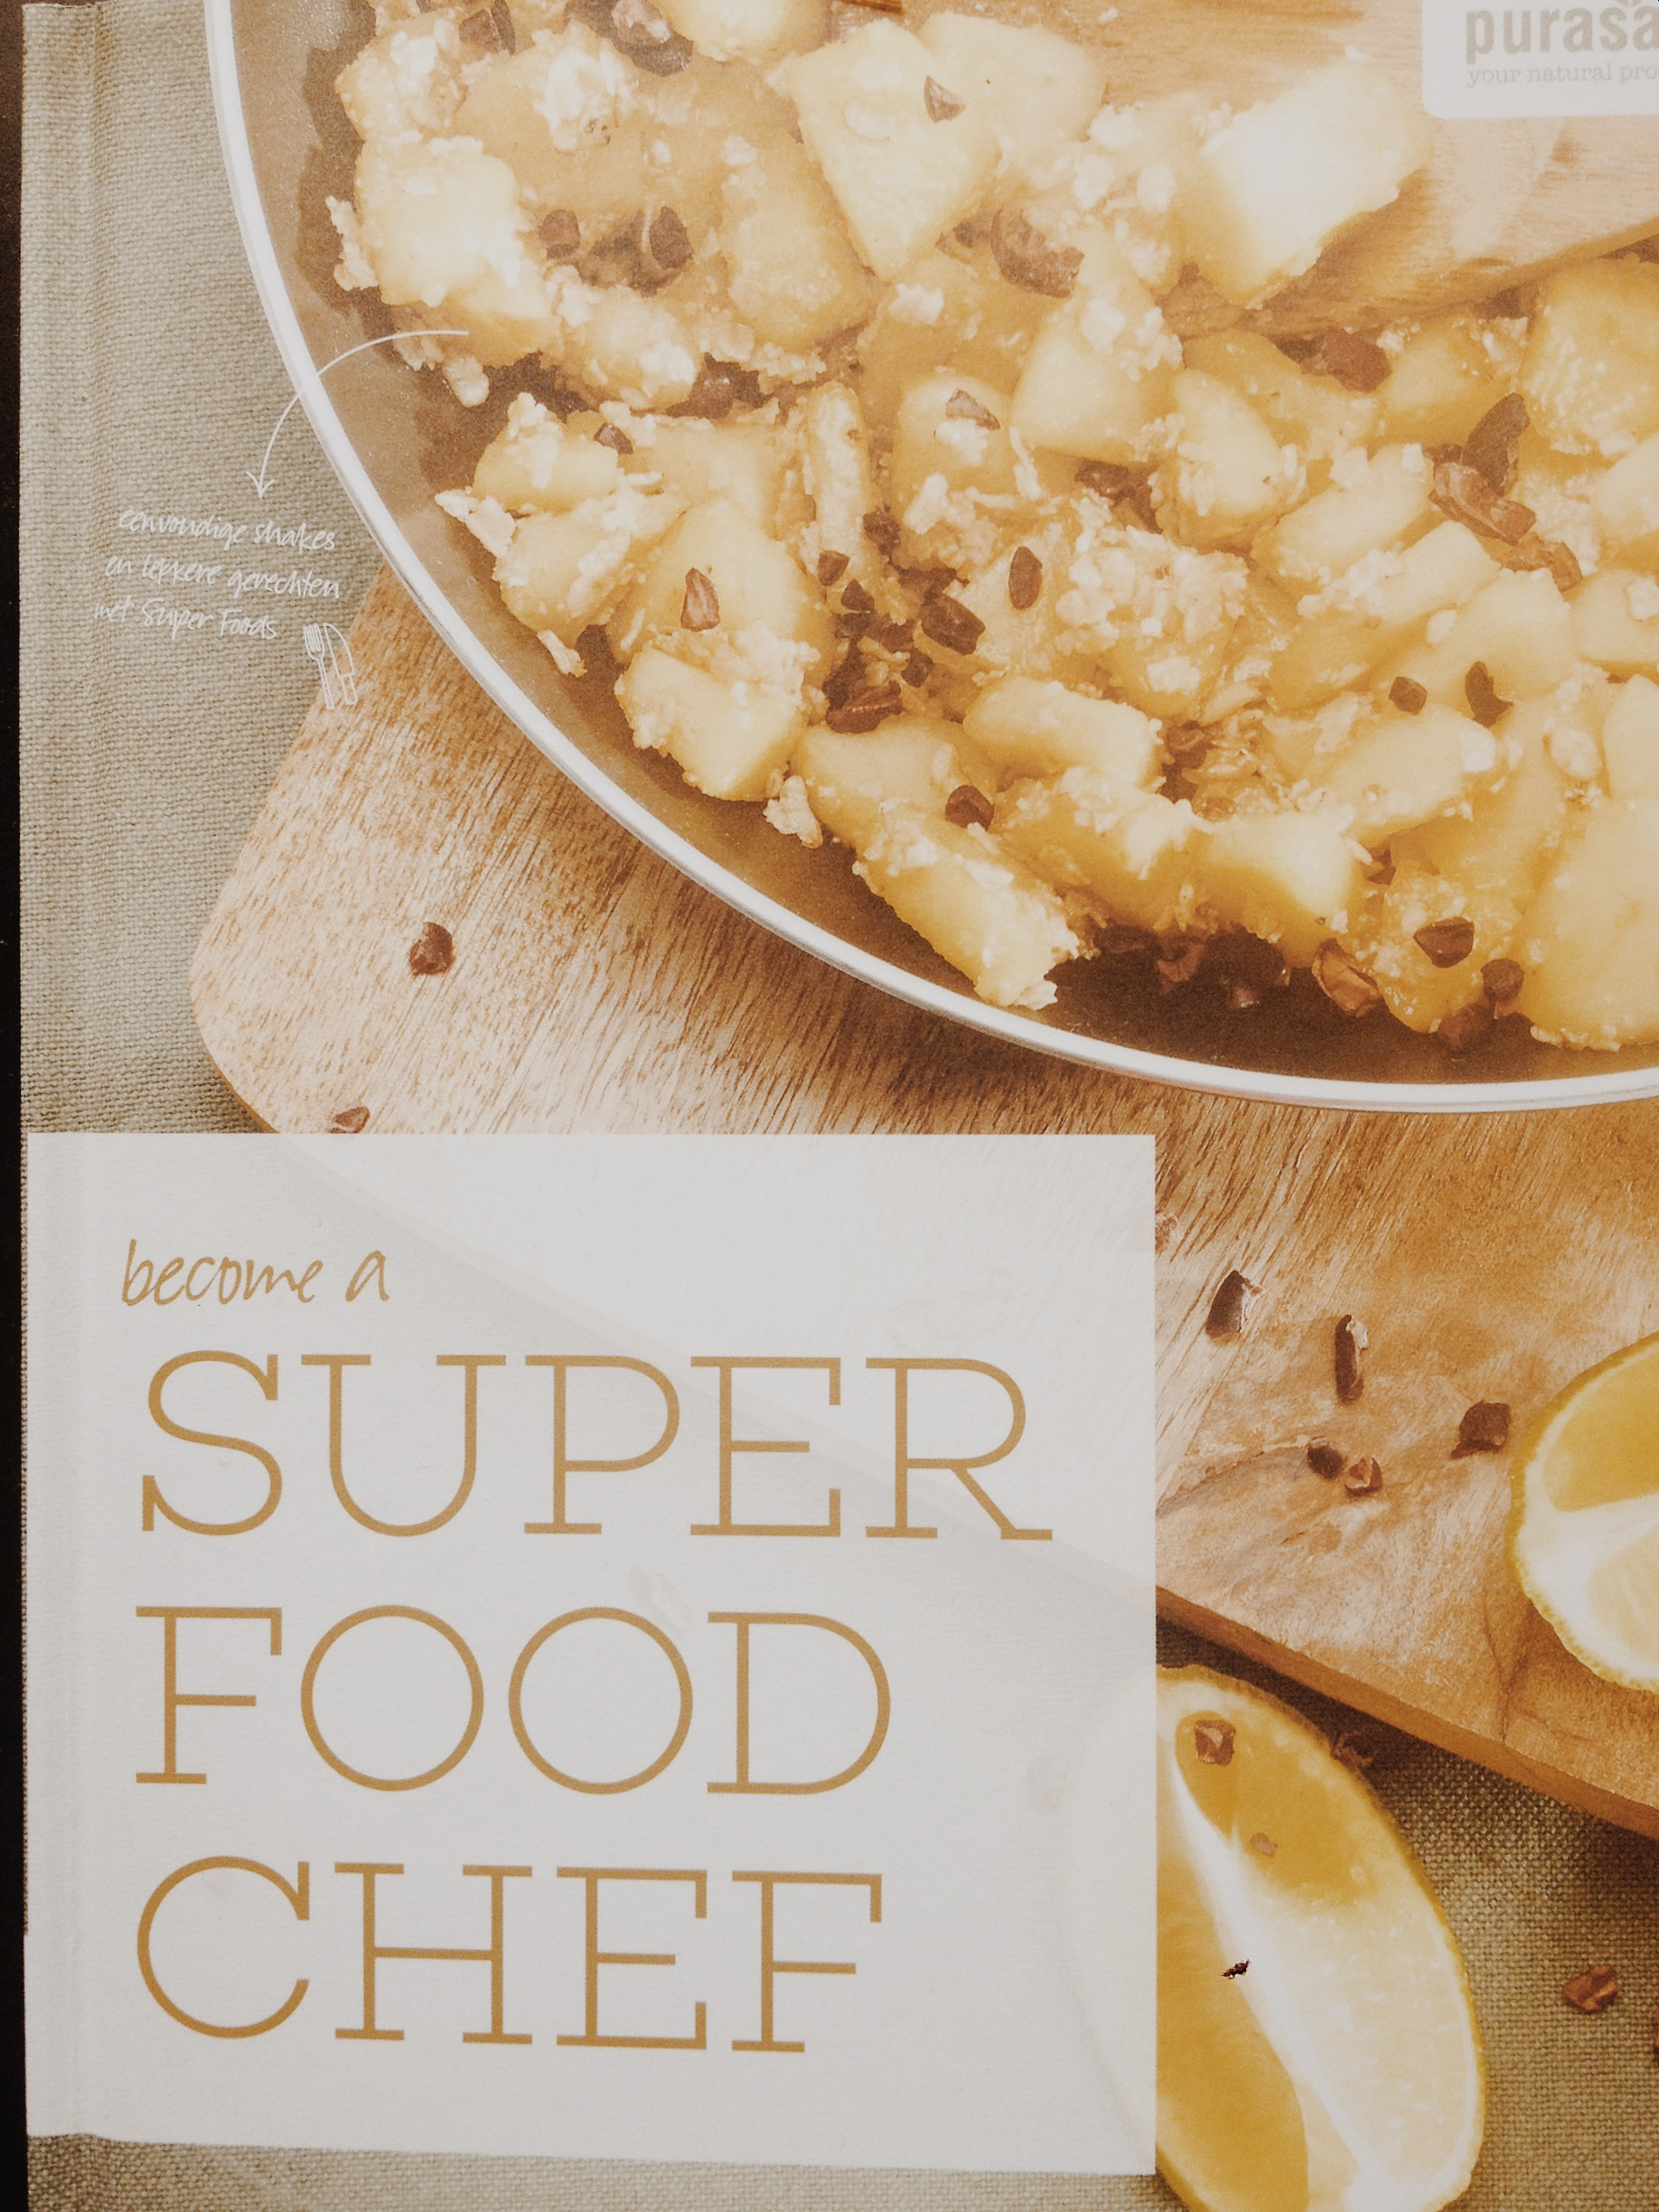 Copywriting kookboek: How to Become a Superfood Chef